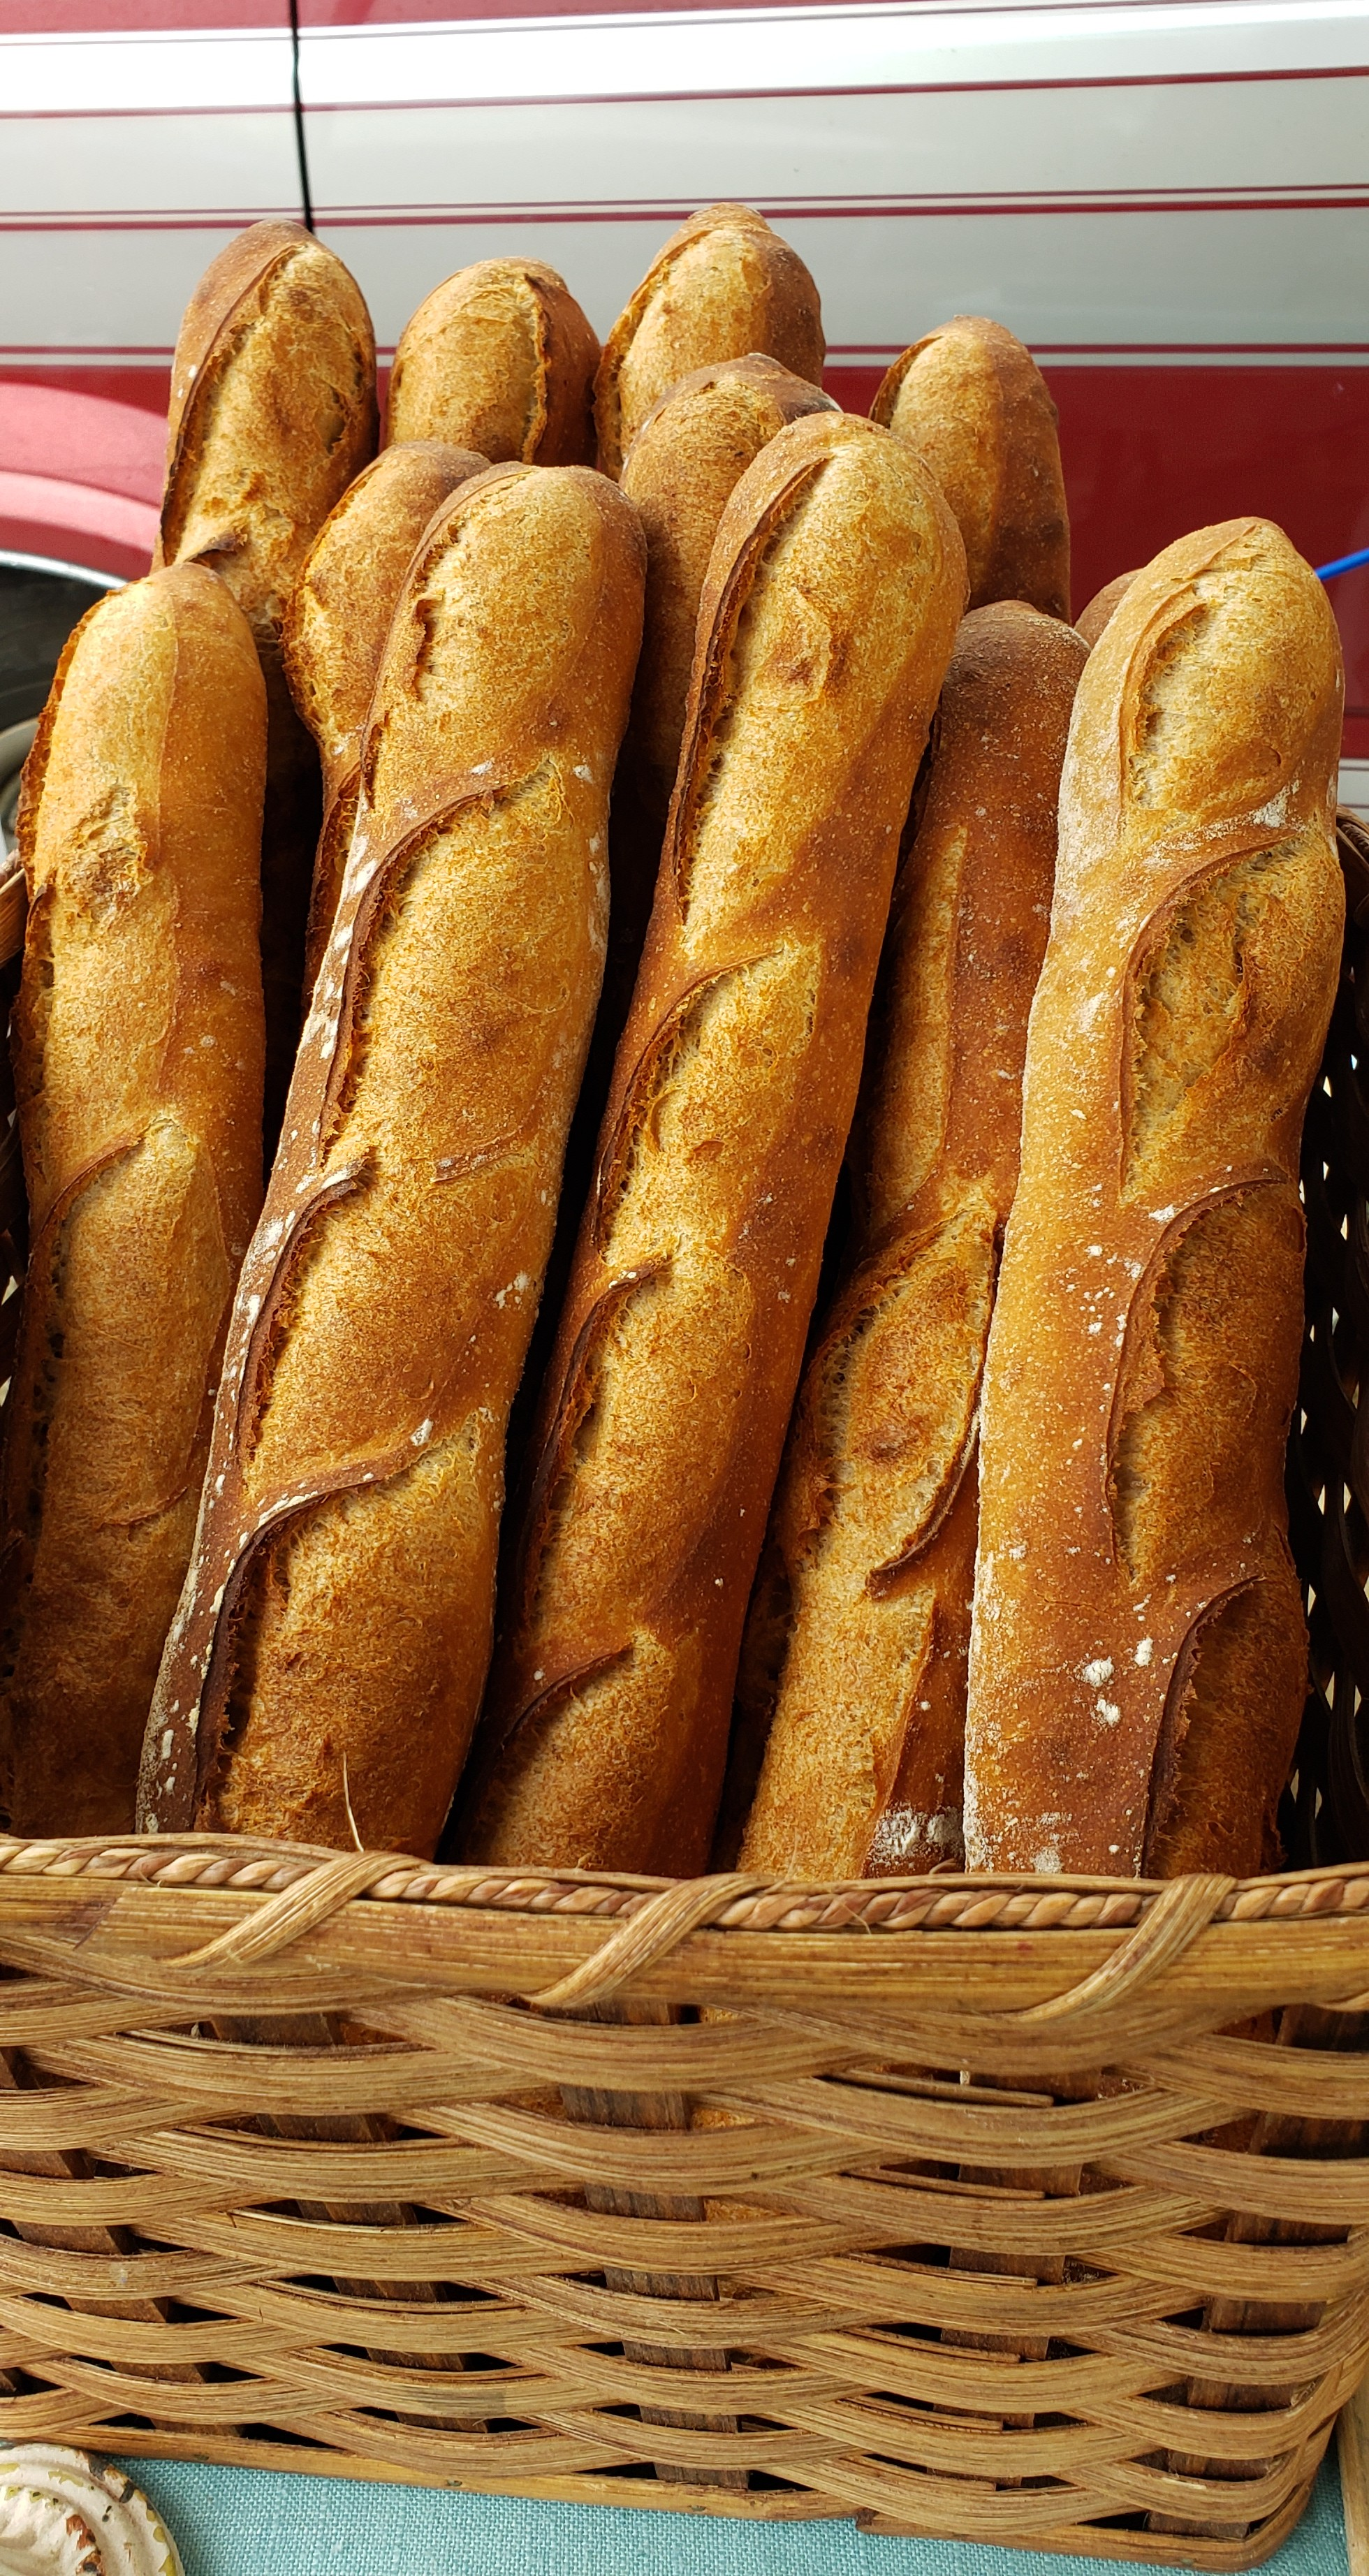 Baguette (Tuesday pick ups ONLY)